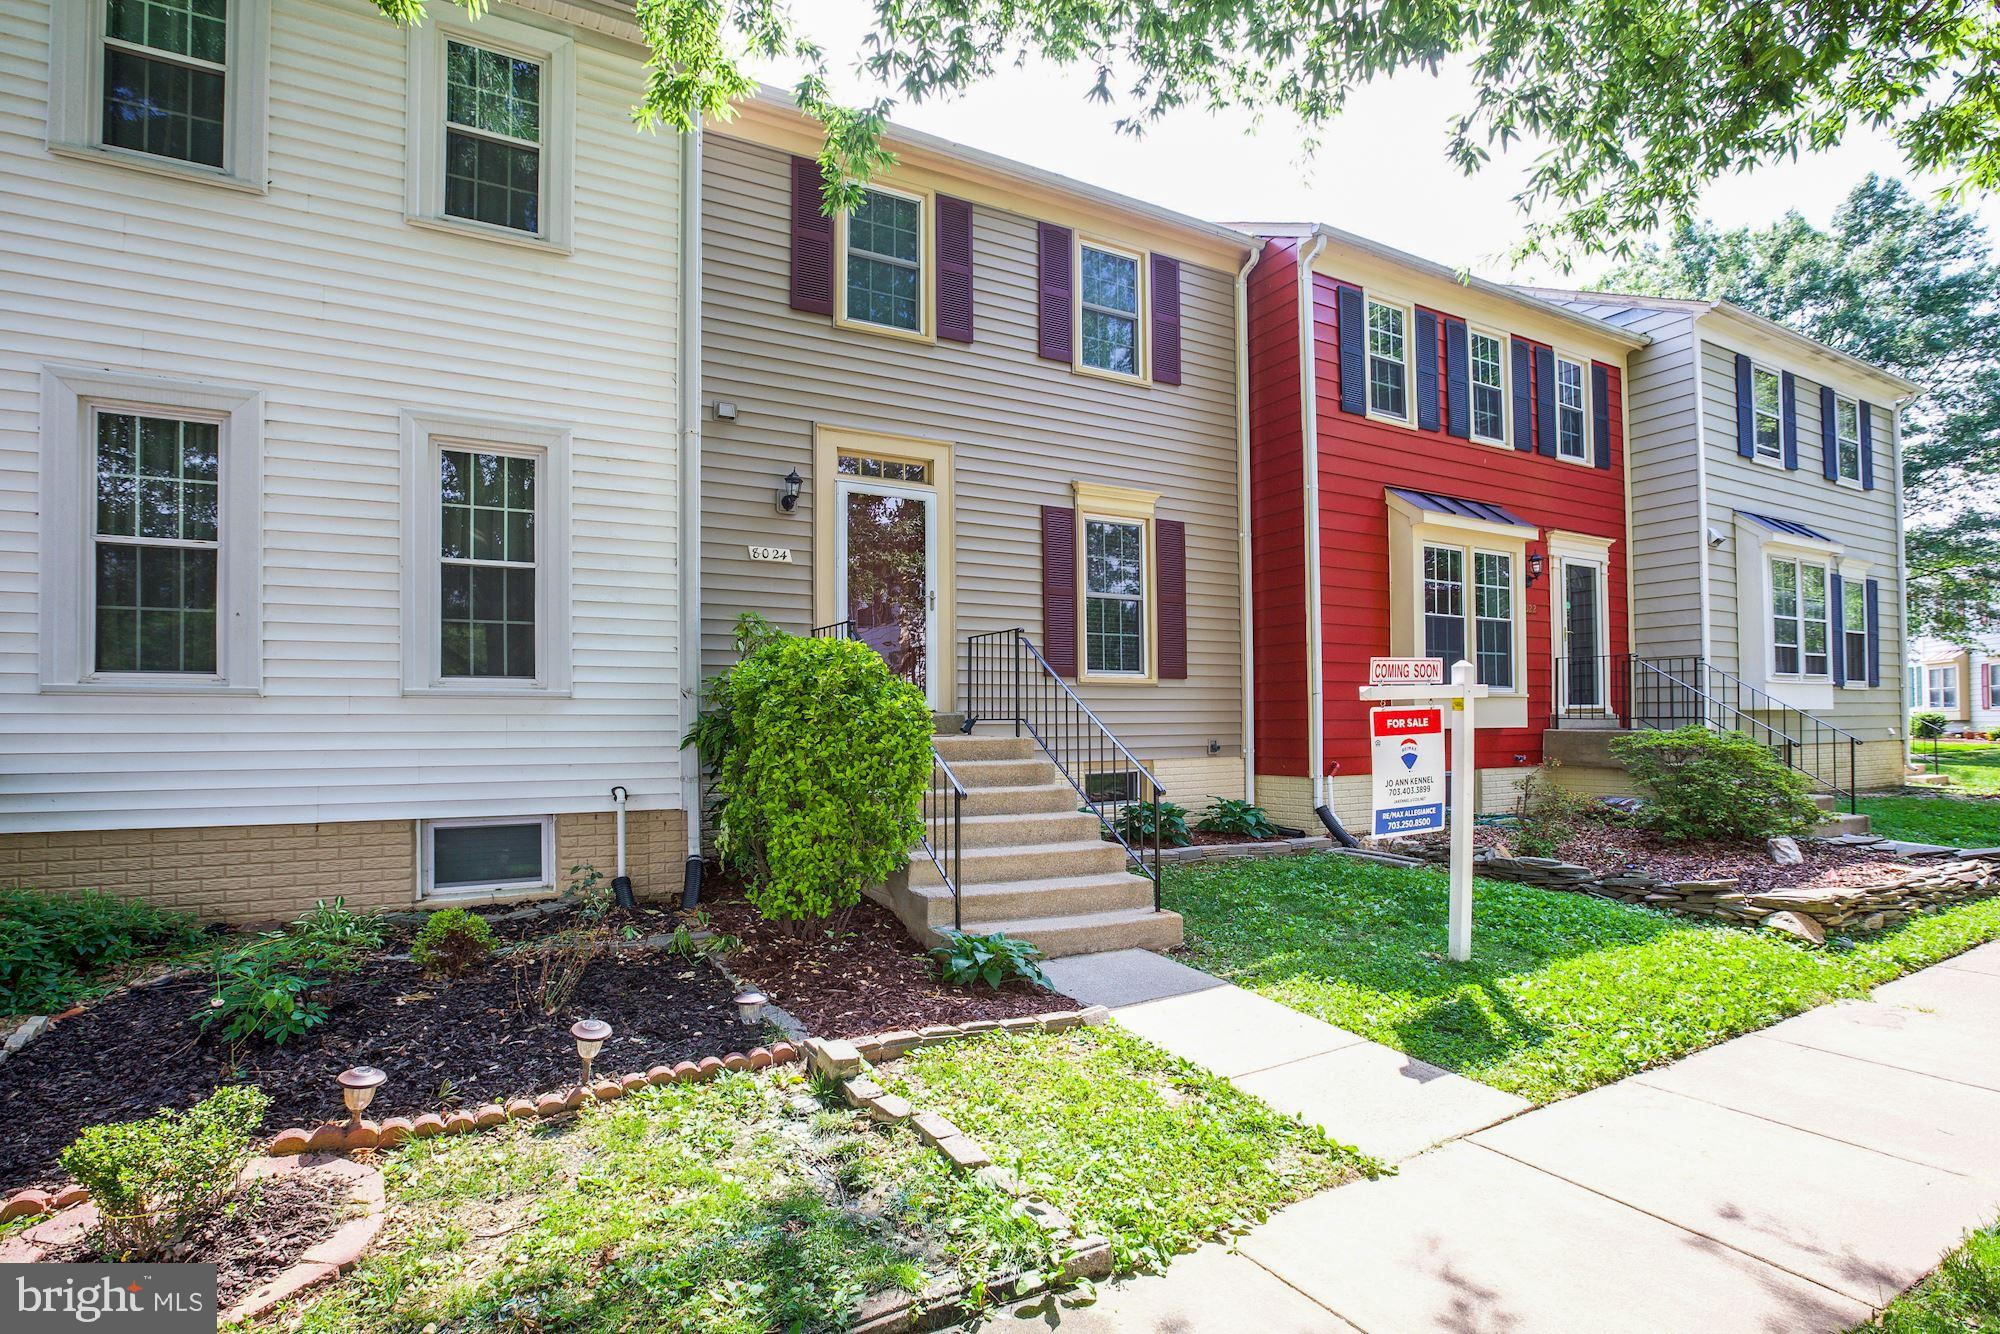 Updated 3 level 3 bed/ 2.5 bath town home featuring updated kitchen with added custom corner unit for kitchen storage and quartz counter tops, Hardwood Floors throughout Main level, new carpet in the upstairs and basement levels, crown molding throughout all three levels, fresh paint, newer Roof, Siding/Gutters, stainless Gas Range, Refrigerator. and Dishwasher, newer Toilets in all baths, Master Bath with granite and porcelain tile, half bath with quartz counter top, renovated 2nd full bath, Triple pane windows and sliding door leading to paver patio, hot water heater (2018), AC unit (2017) Finished basement with rec room, full bath and office/den, added storage, third floor laundry for ease and convenience, new ceiling fans with over head lighting on the third level, recessed lighting in the master, main floor and basement. Two reserved parking spots, one located directly outside the front door.  Nice neighborhood, walking distance to shopping center and elementary school.   Minutes to NGA, Belvoir, metro, commuter lot, public bus and newly remodeled mall (Springfield Town Center).  Easy access to 95 North/South.  Community pool by membership.